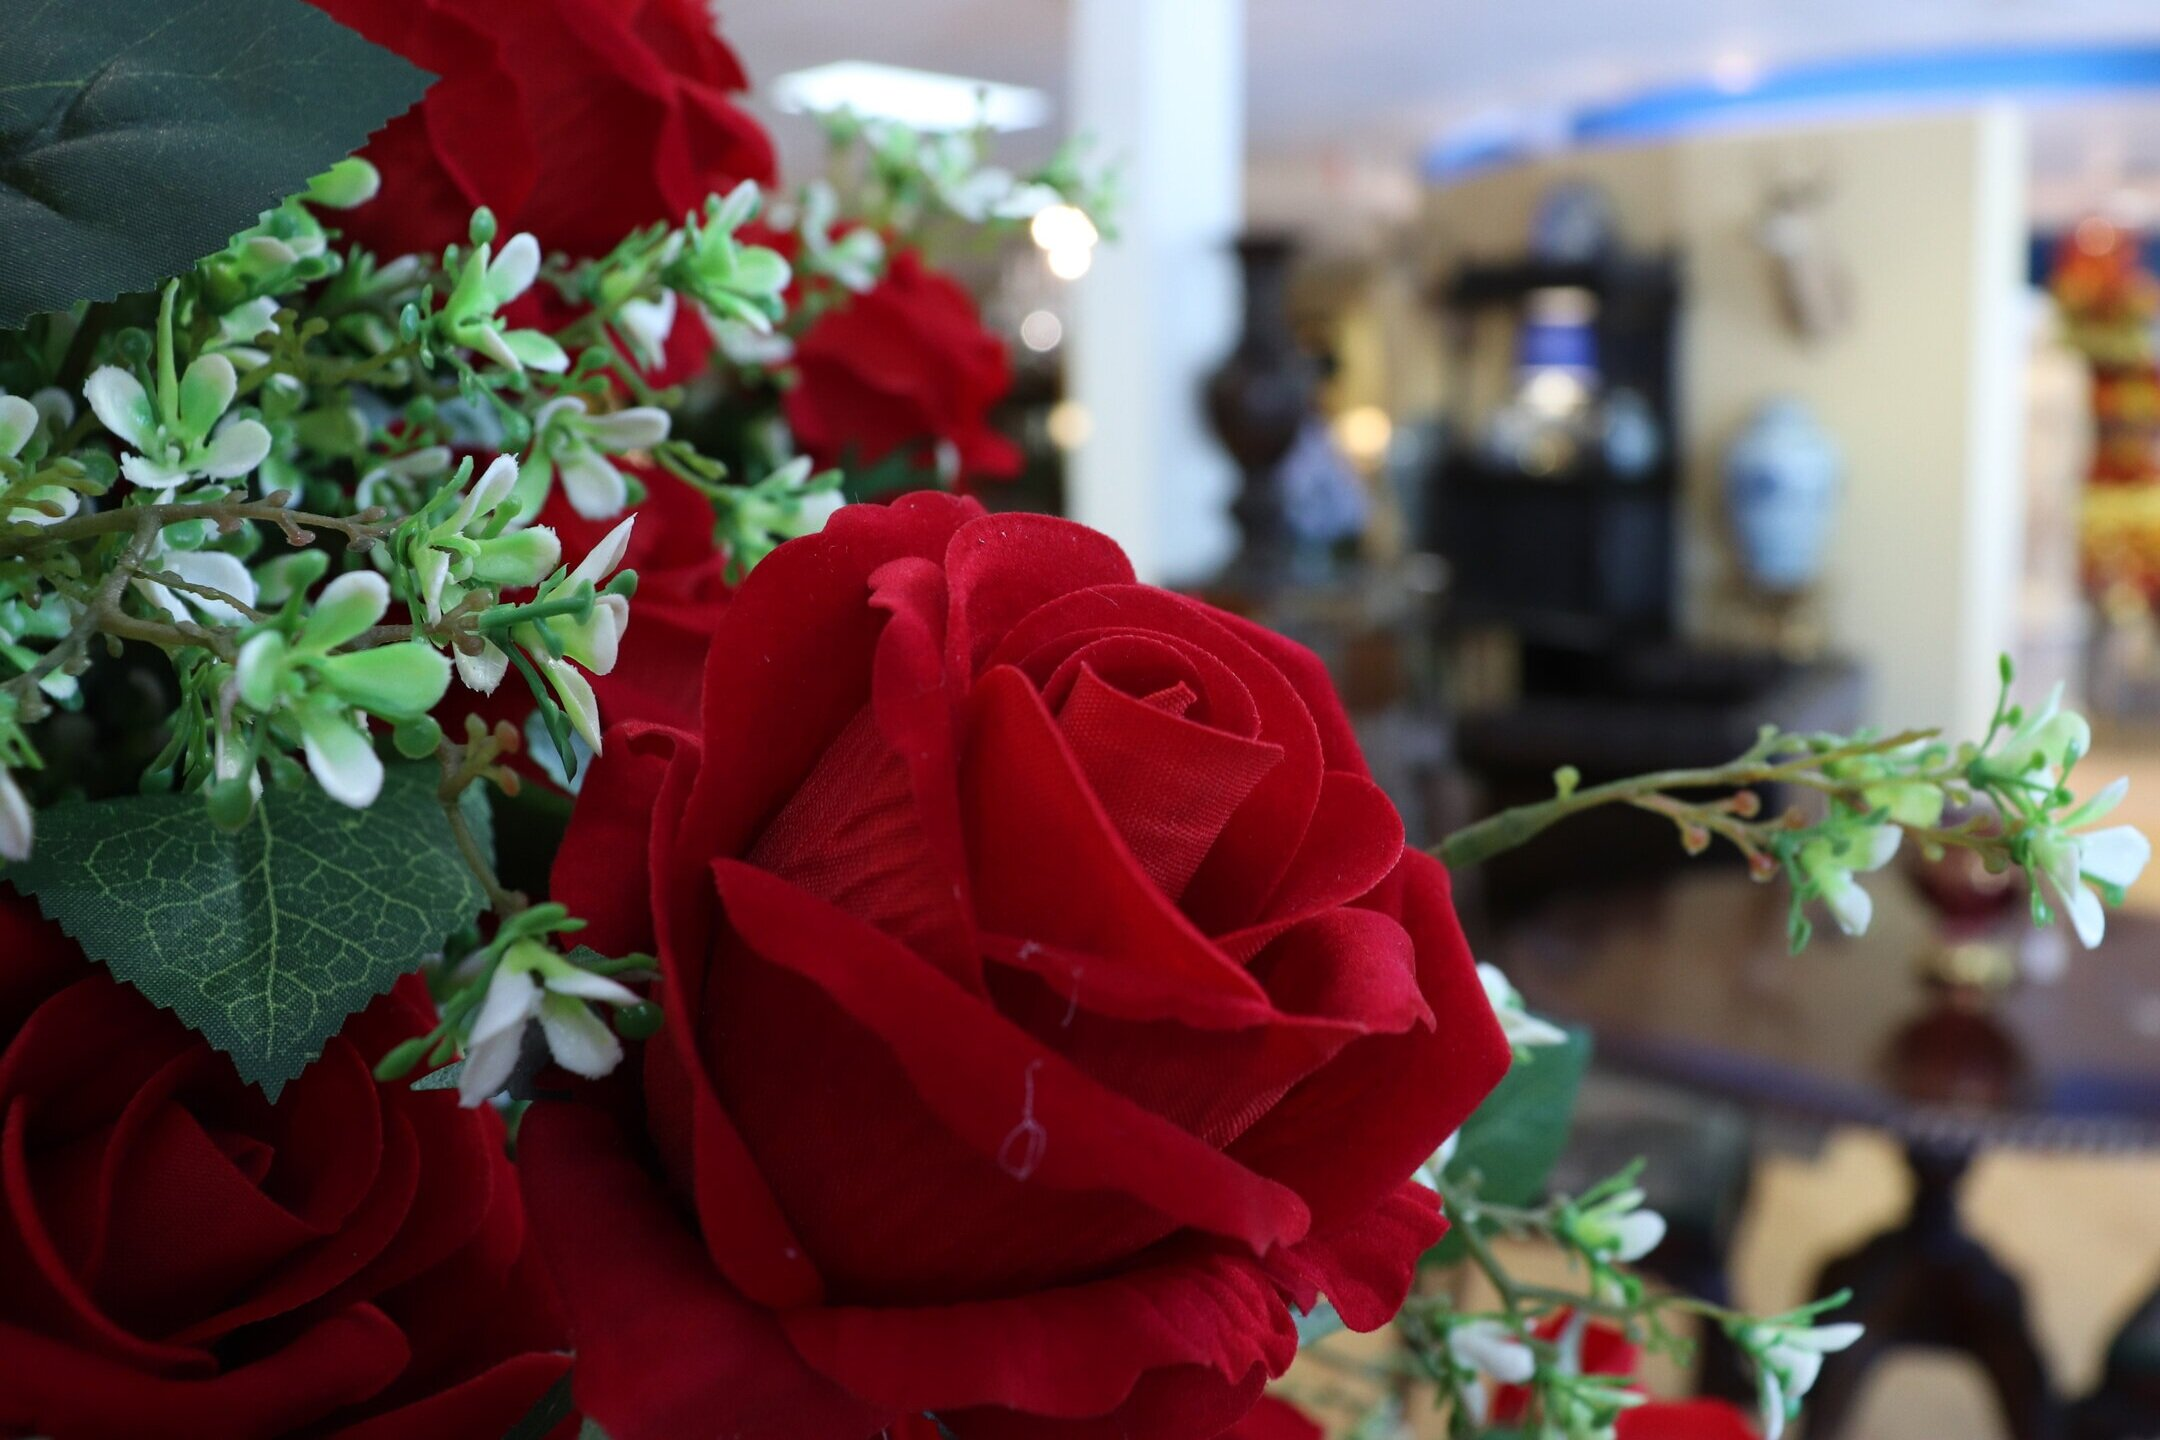 We offer other services as well - With an in-house florist and interior designer we can make your home unique and personalized.